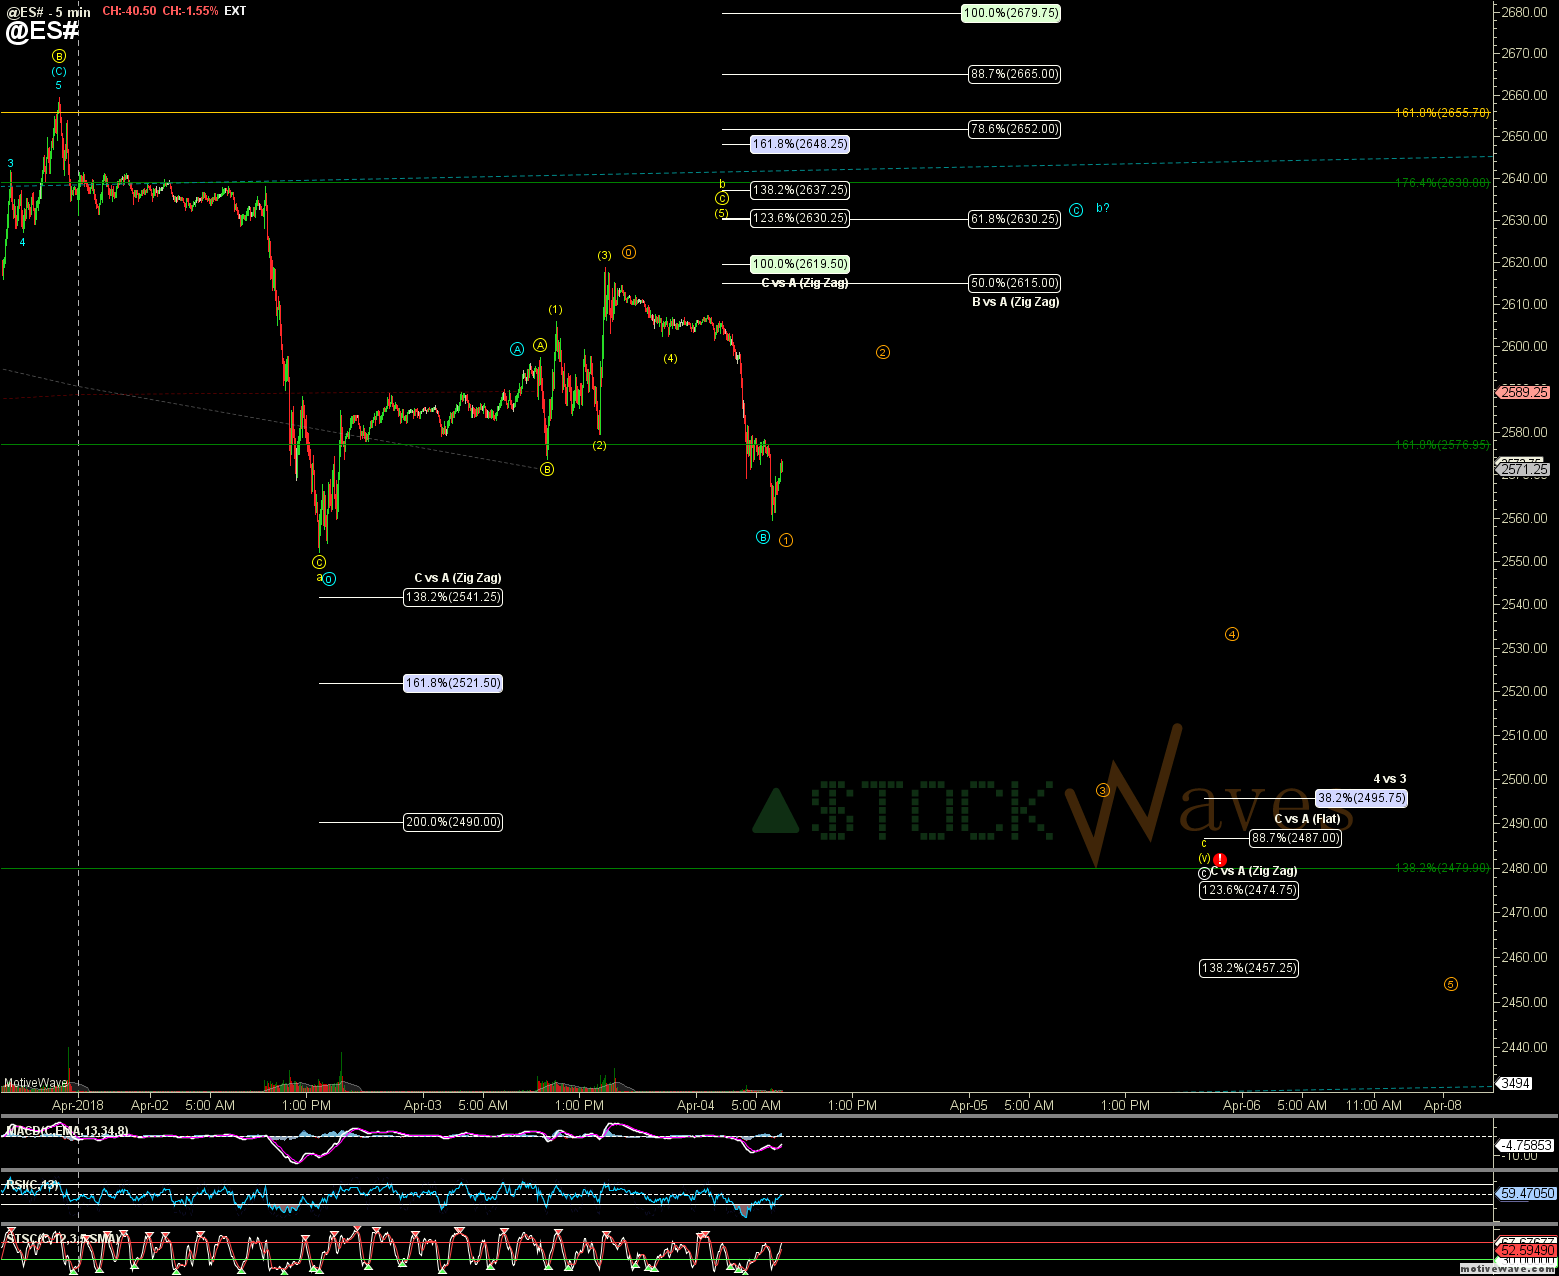 @ES# - Primary Analysis - Apr-04 0712 AM (5 min)